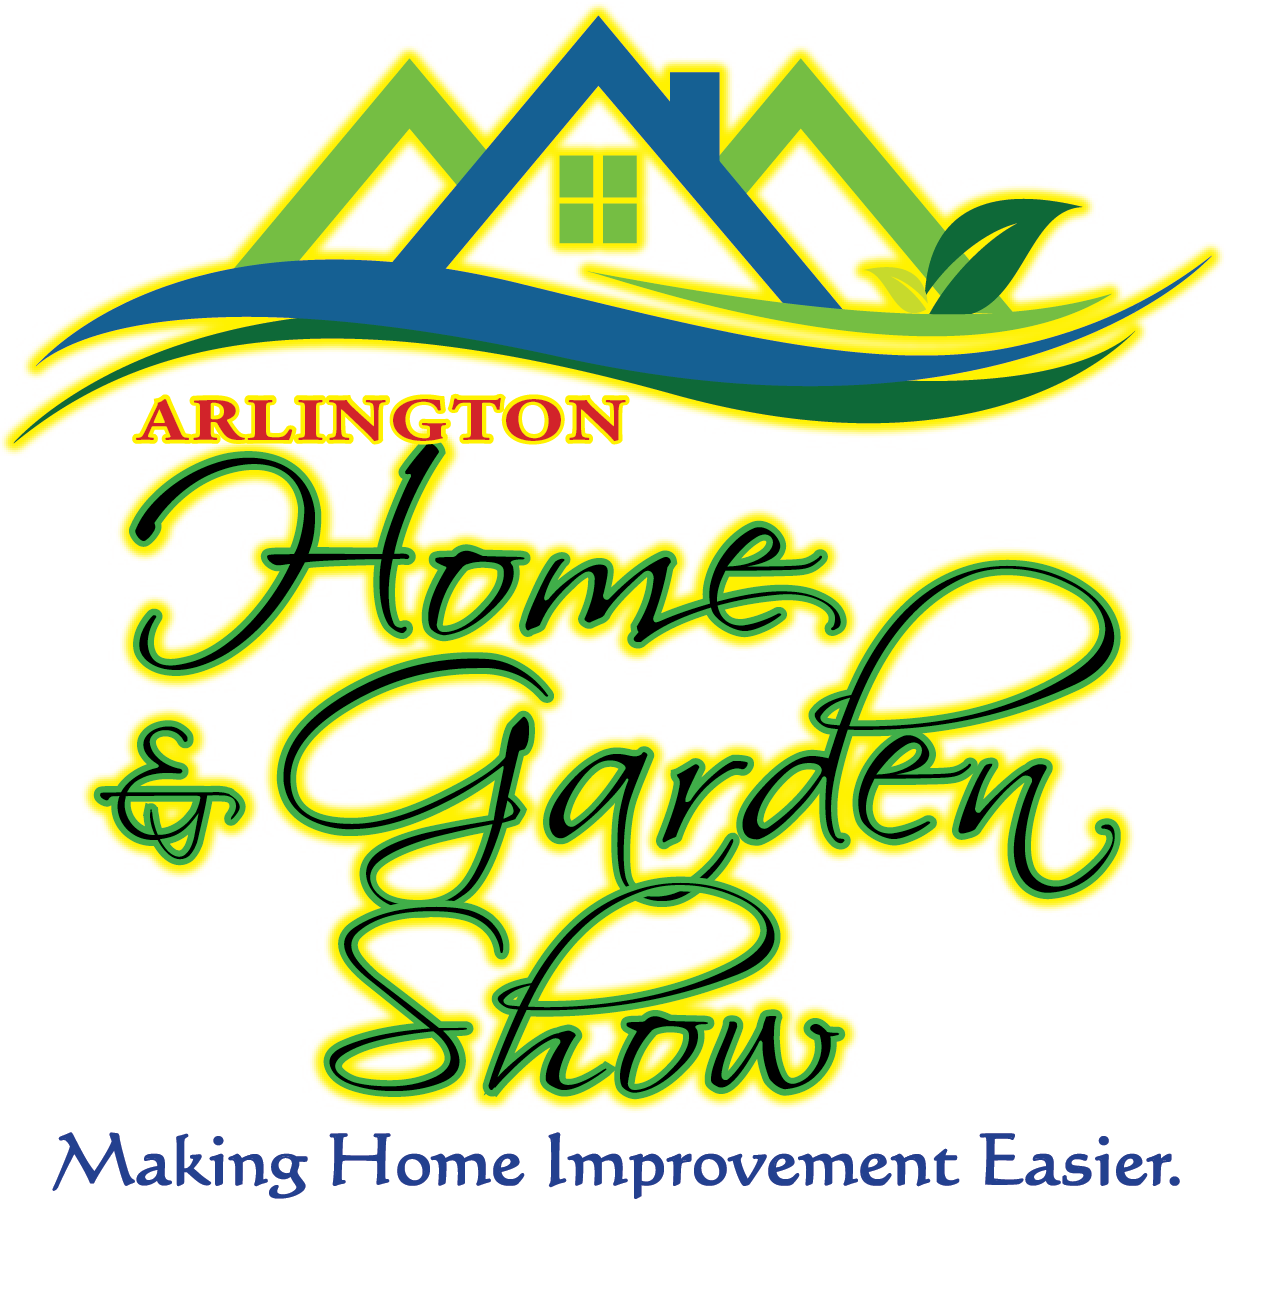 2019 Arlington Home and Garden Expo